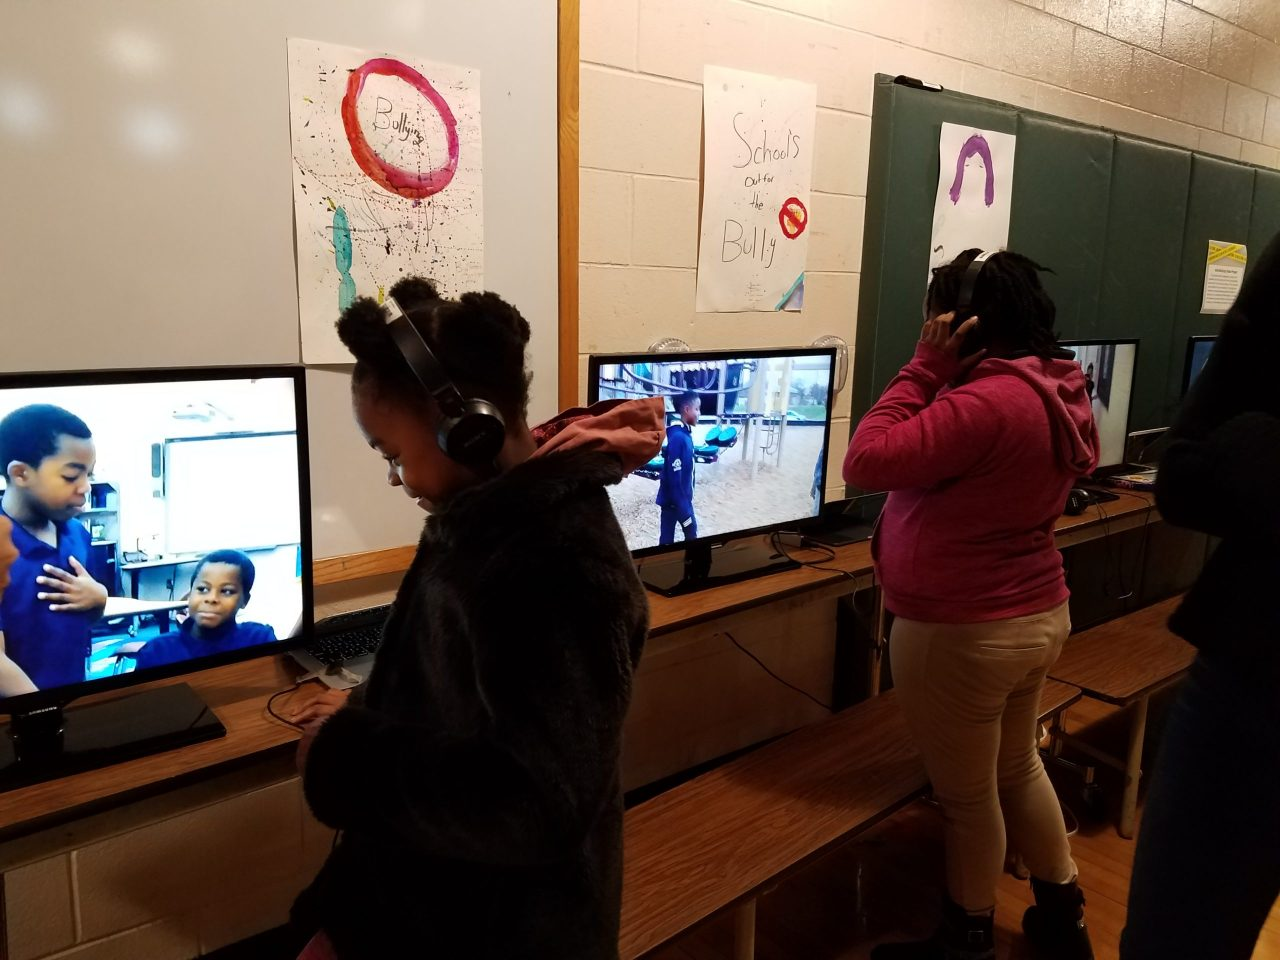 Young people interacting with art education videos